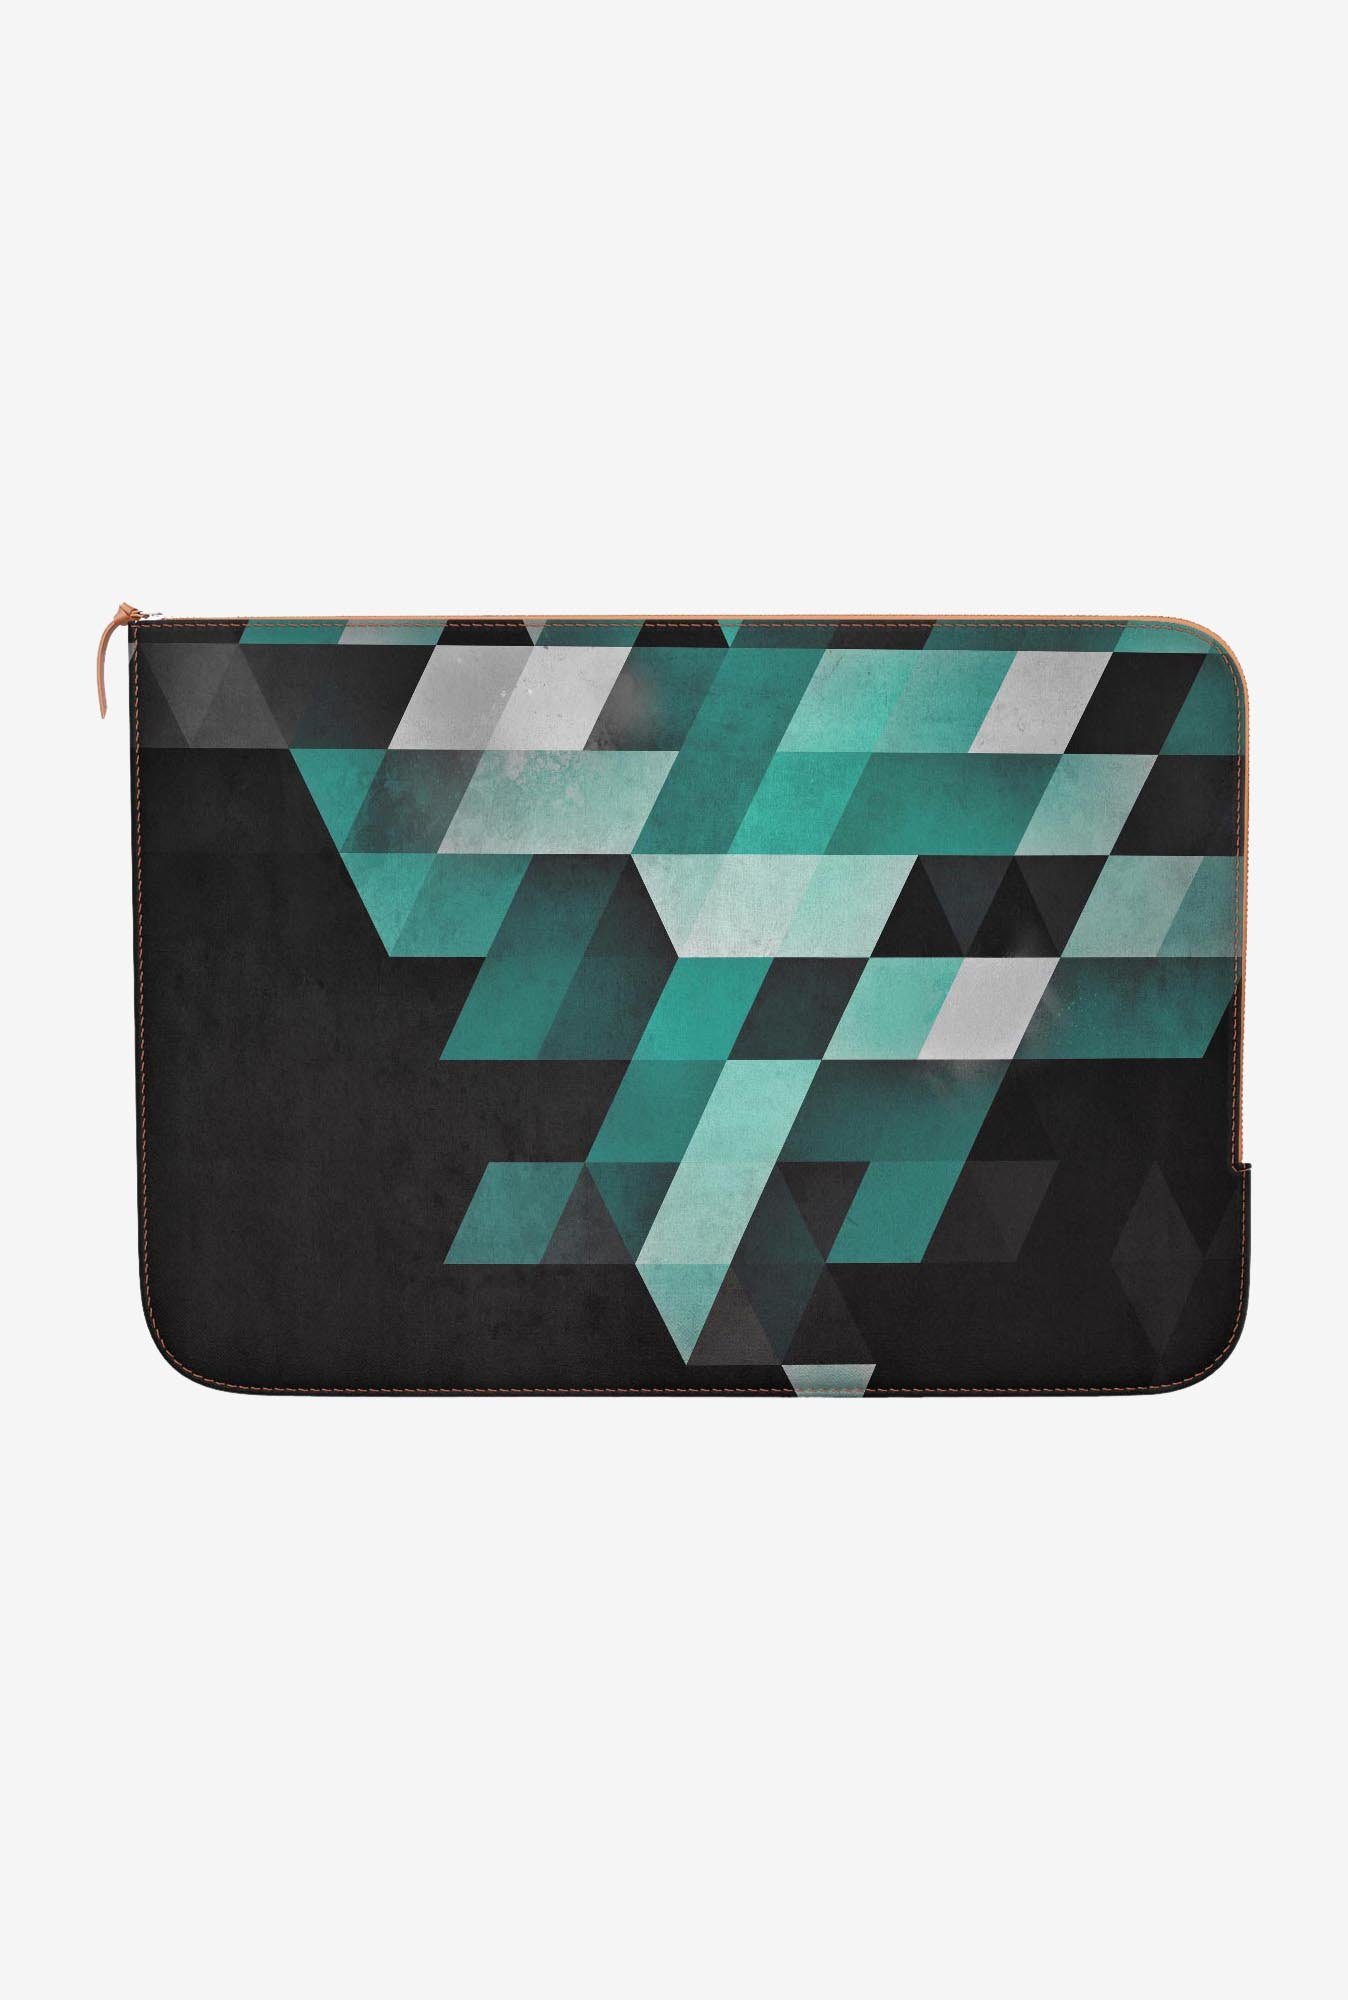 DailyObjects Dryma Mynt Hrxtl Macbook Air 11 Zippered Sleeve